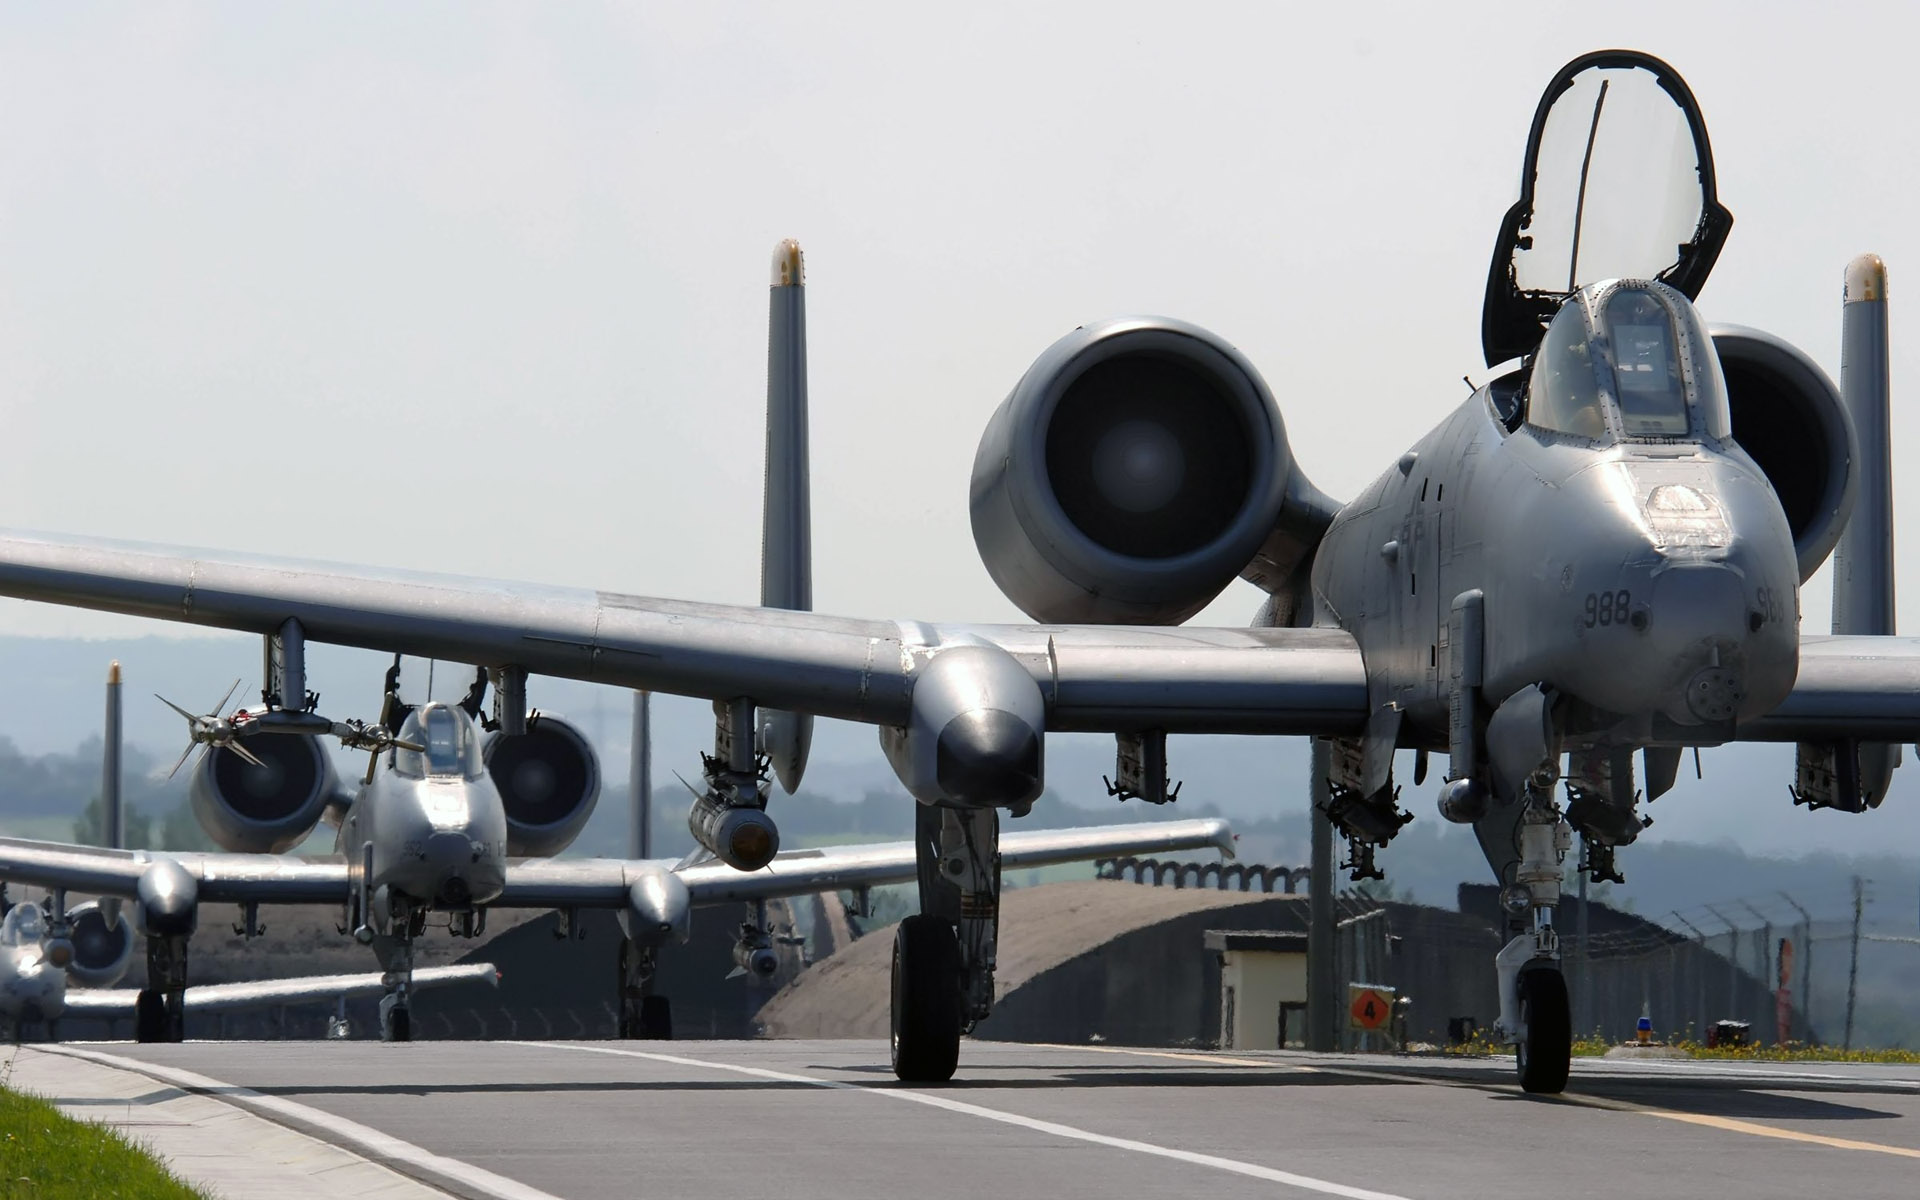 A 10 Thunderbolt II Aircrafts 168.59 Kb